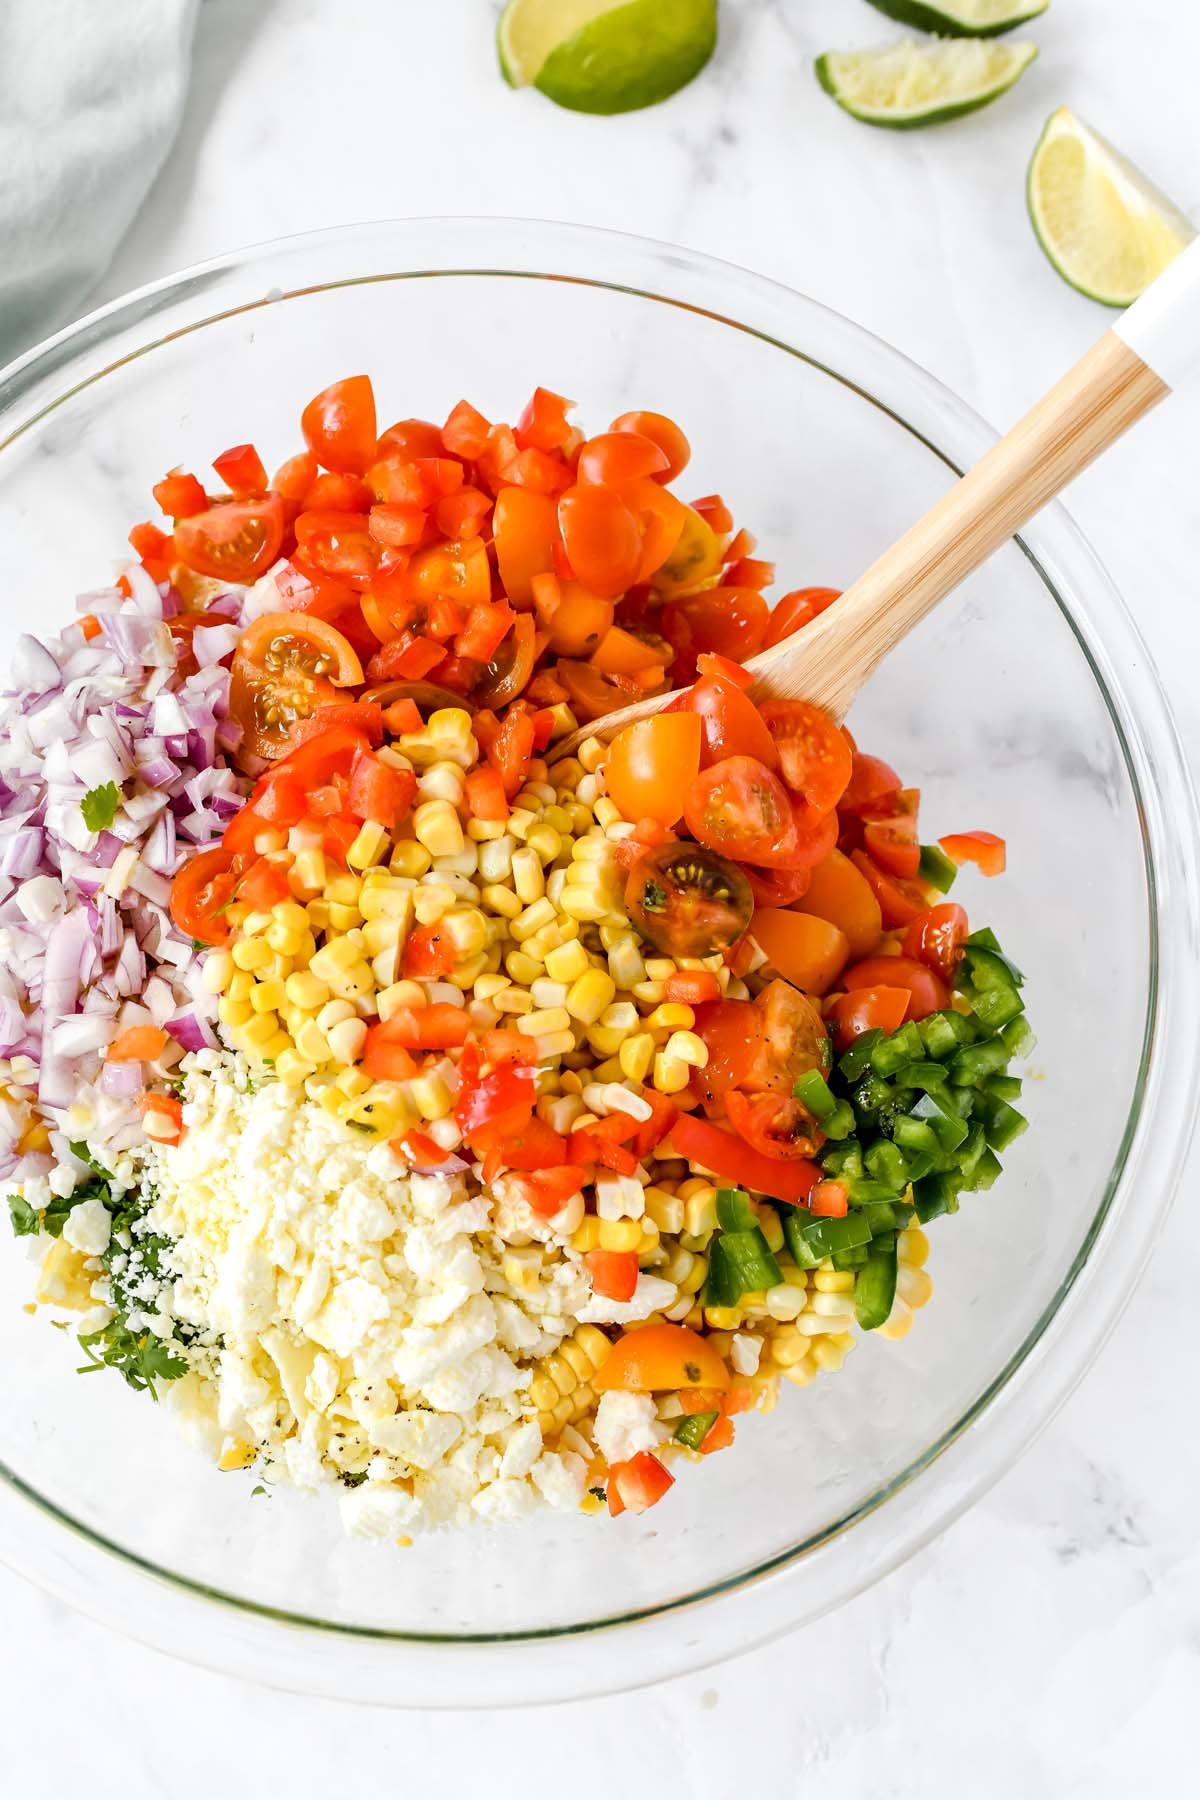 Colorful corn salad ingredients in a large glass bowl.